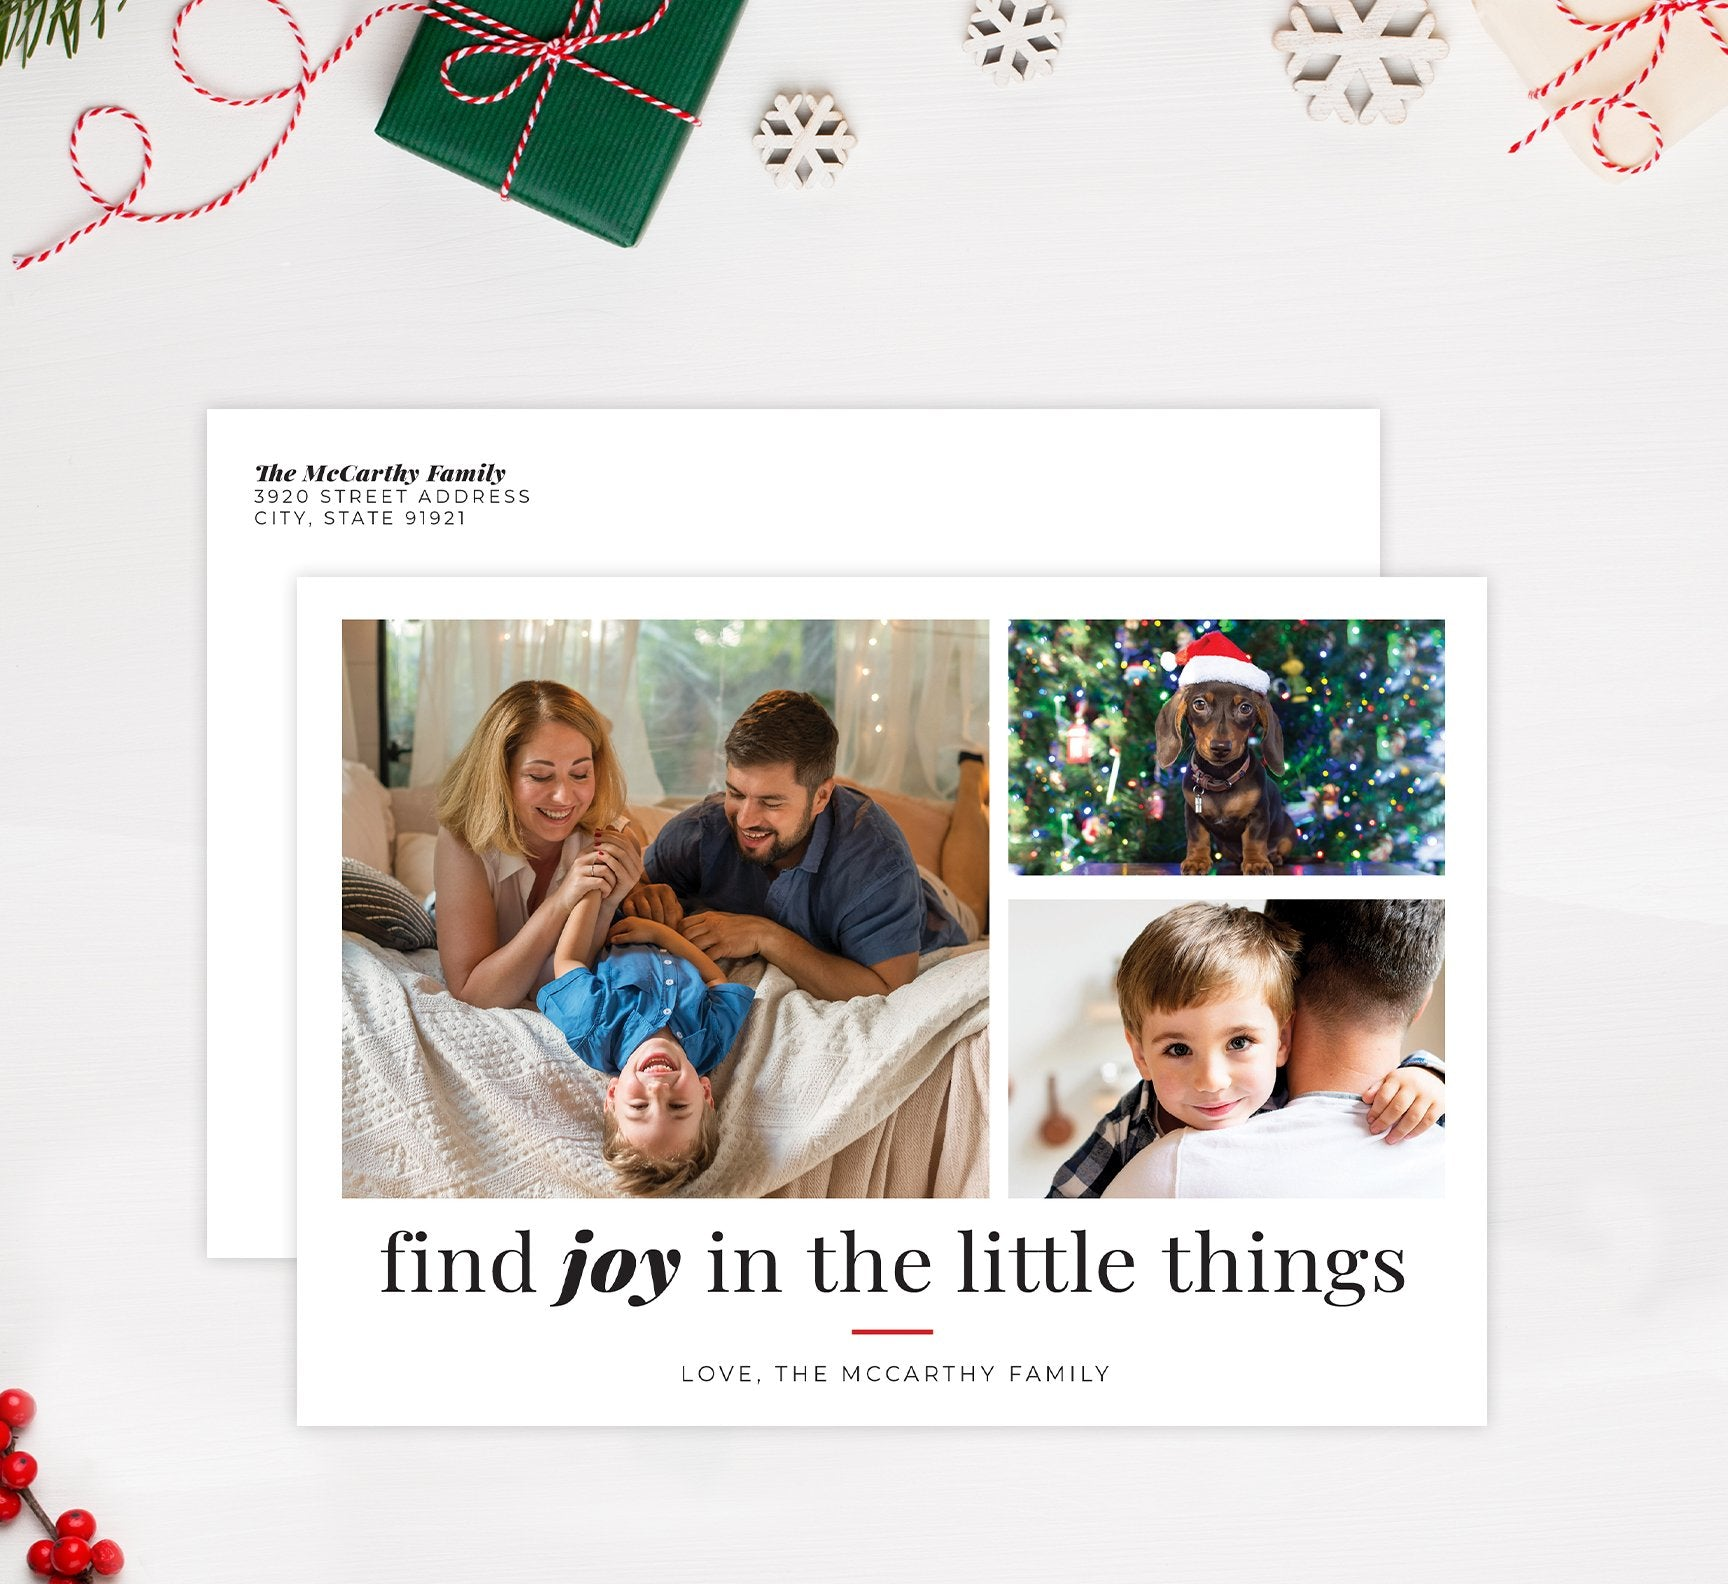 Find Joy Holiday Card Mockup; Holiday card with envelope and return address printed on it.